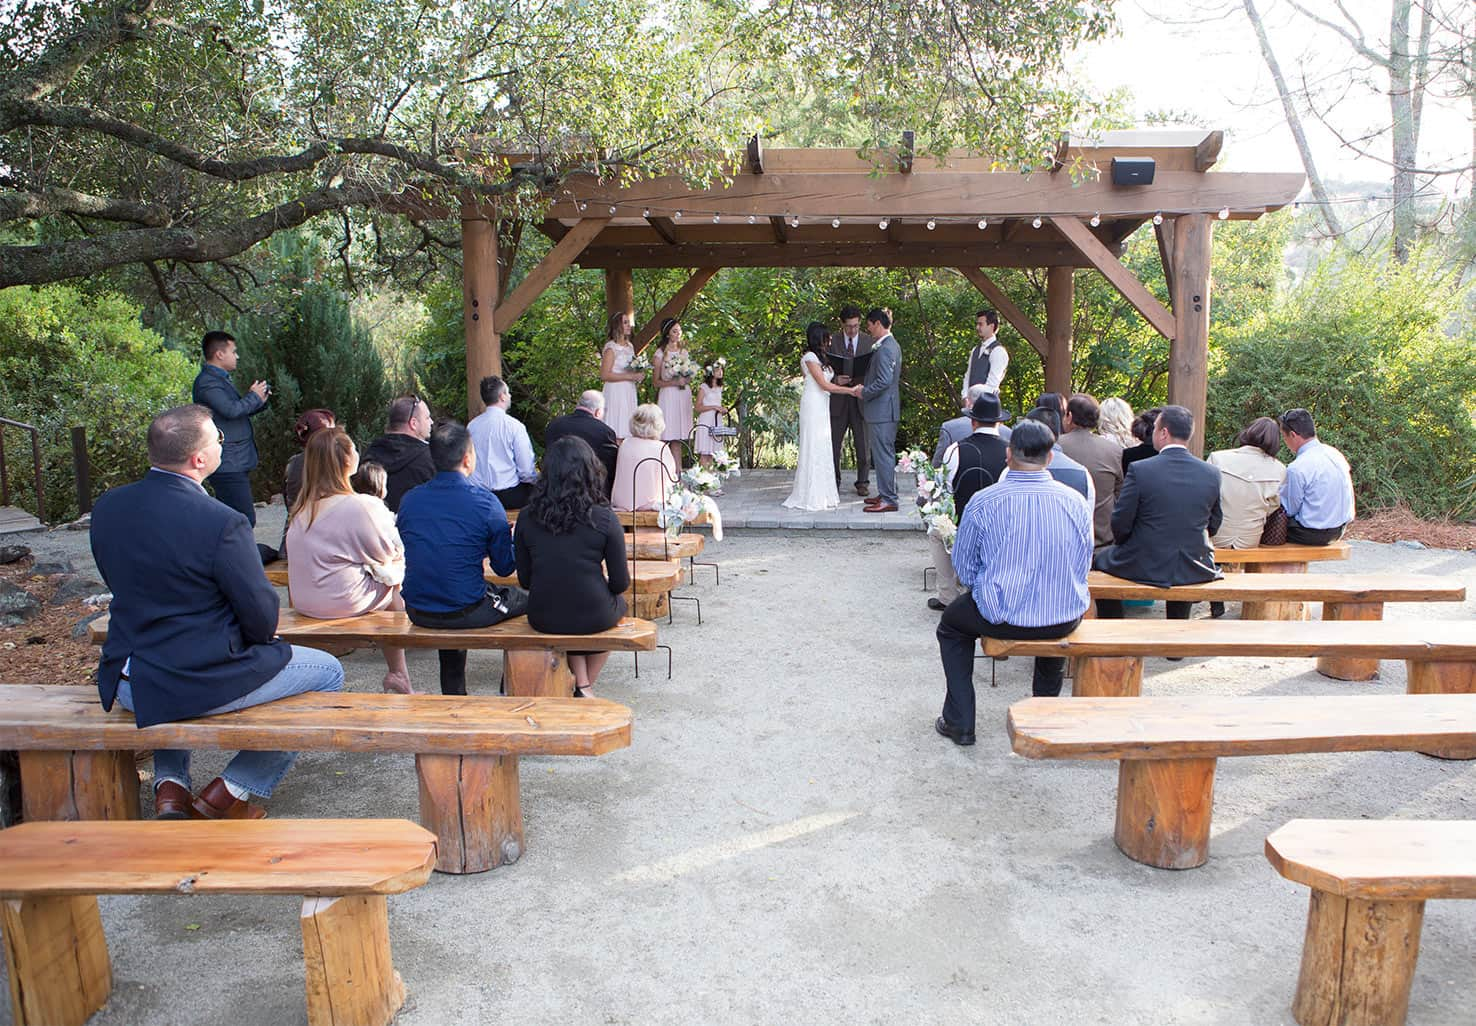 Wedding Pavilion with guests